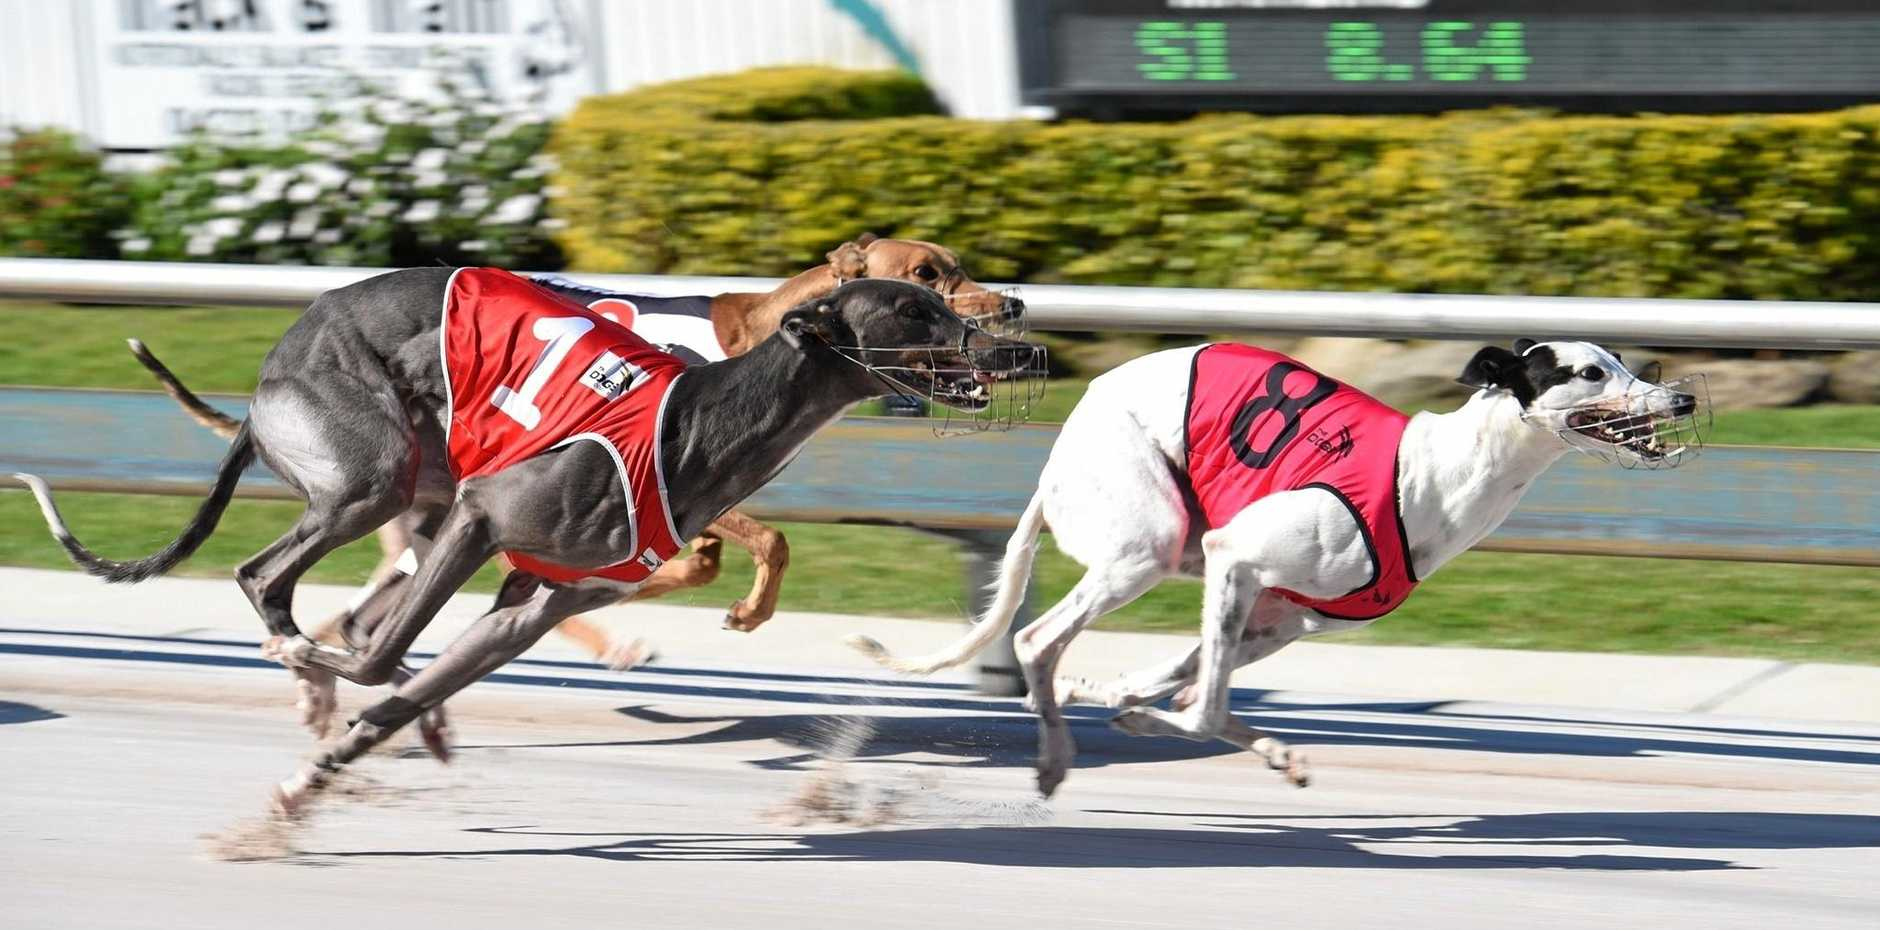 BAN REVERSAL: Coffs Harbour MP Andrew Fraser has called for the NSW Government to reverse its decision to ban greyhound racing.